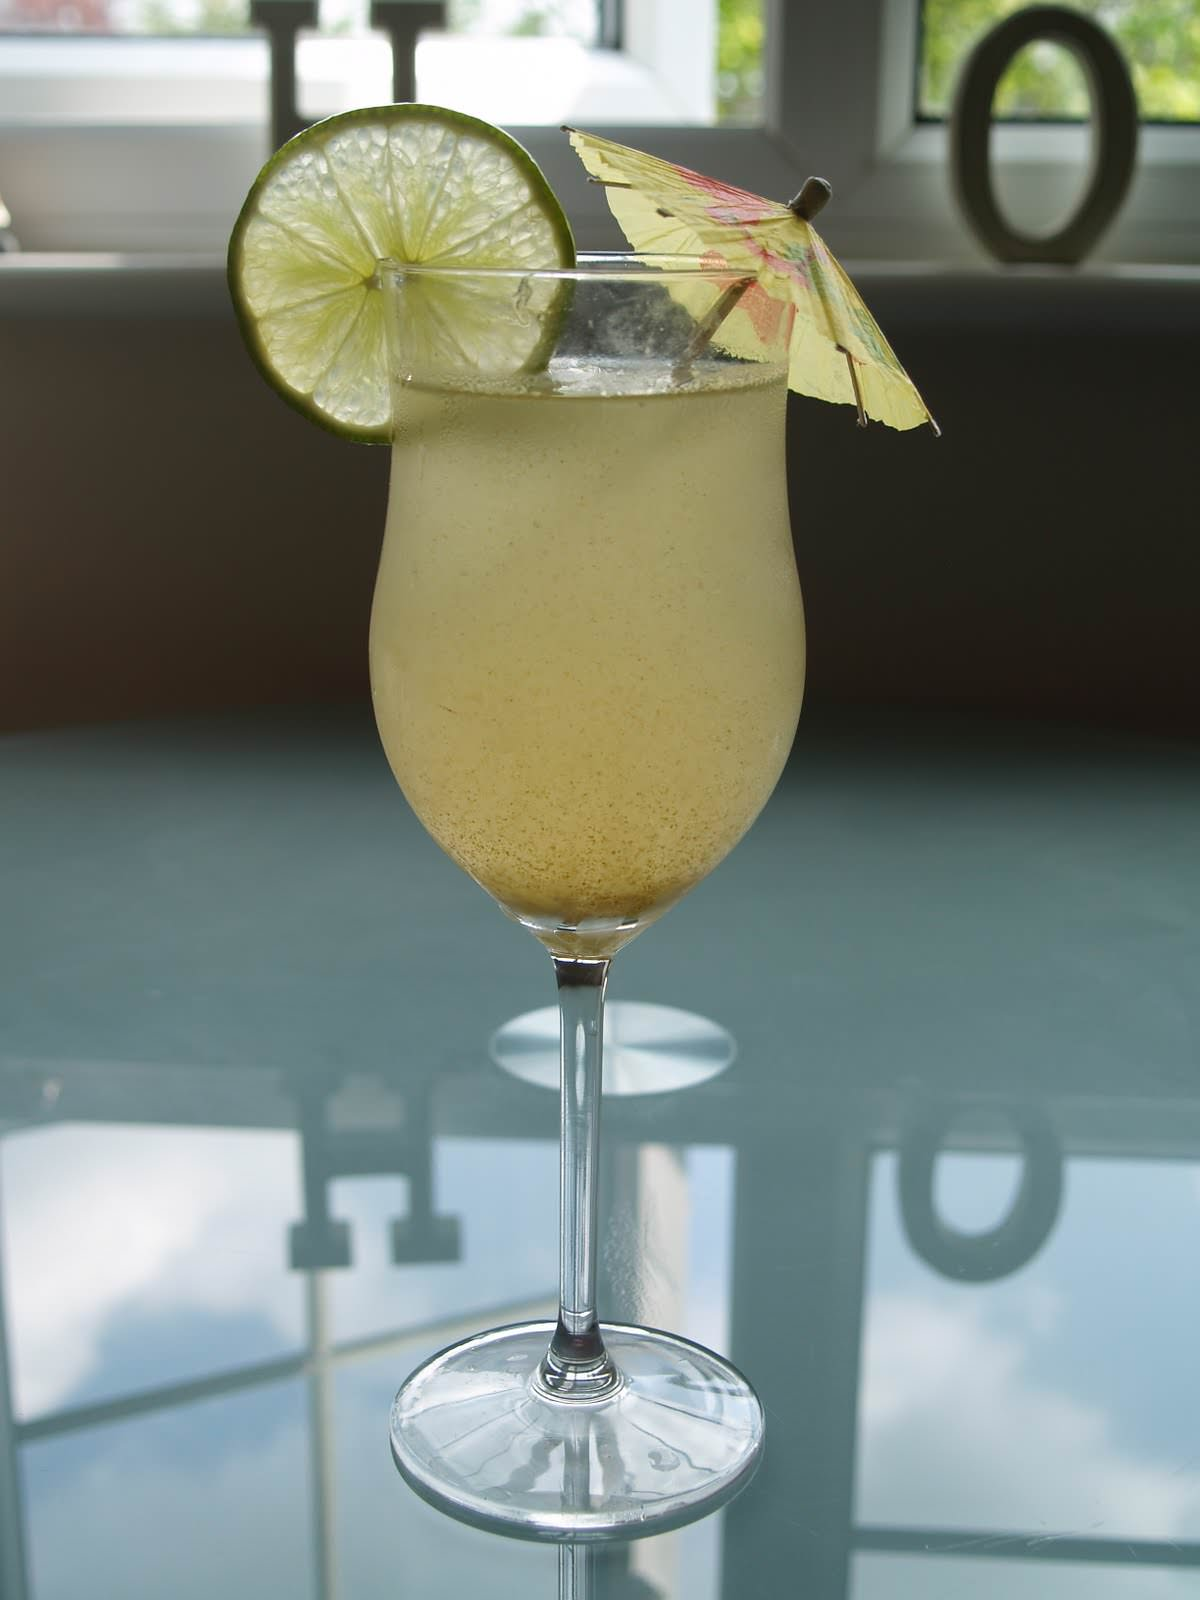 It is undoubtedly the most refreshing cooler for summer 2